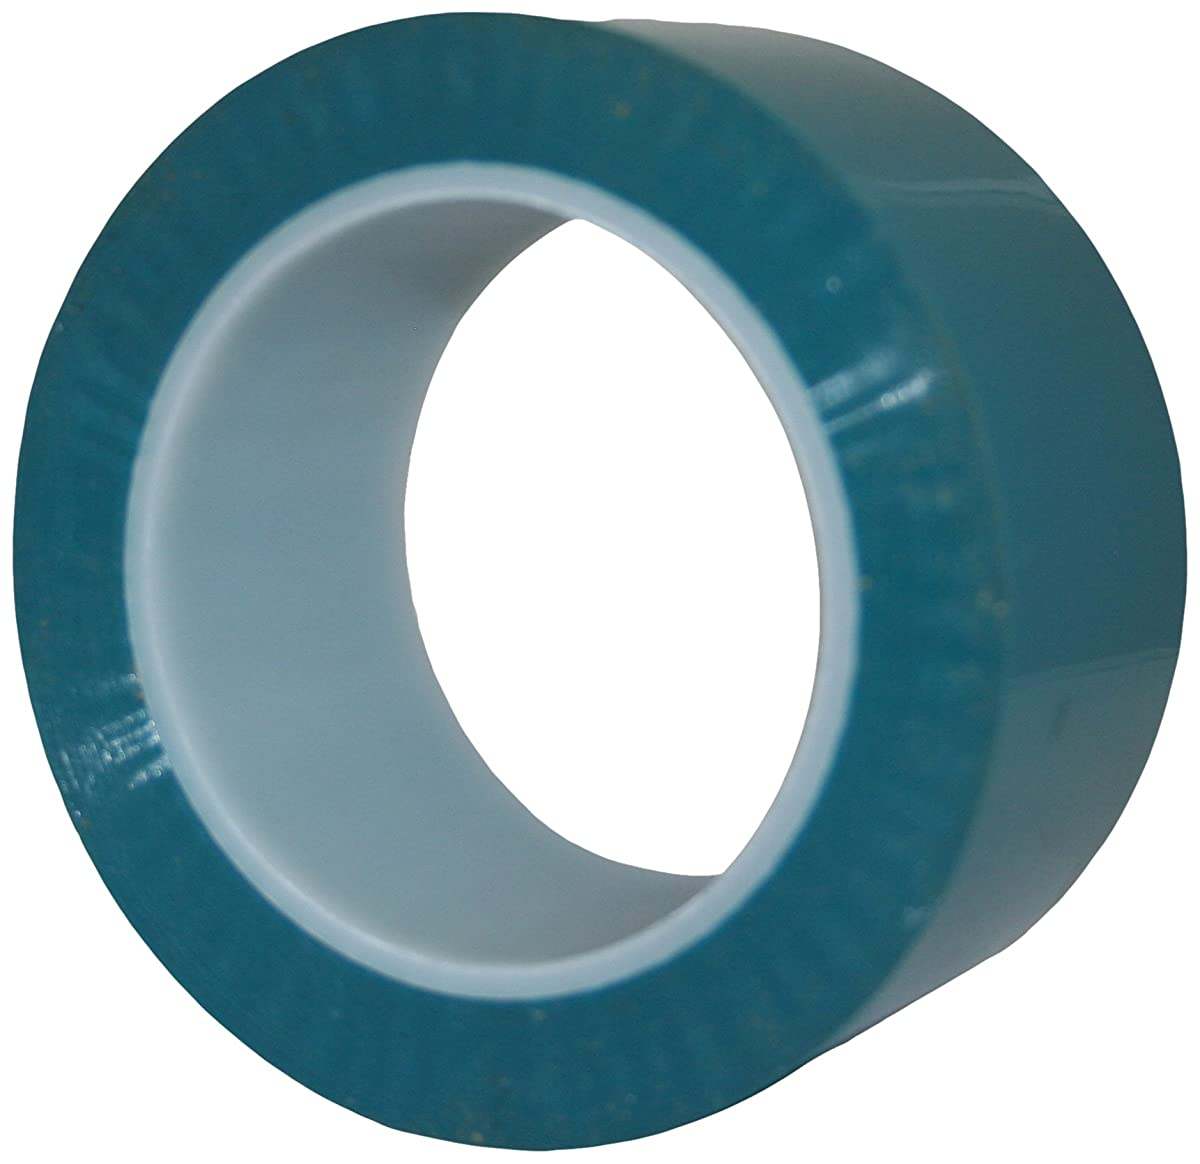 Maxi 811 Polyester/Silicone High Performance Platers Tape Roll, 2.9 mil Thick, 72 yds Length, 5/8